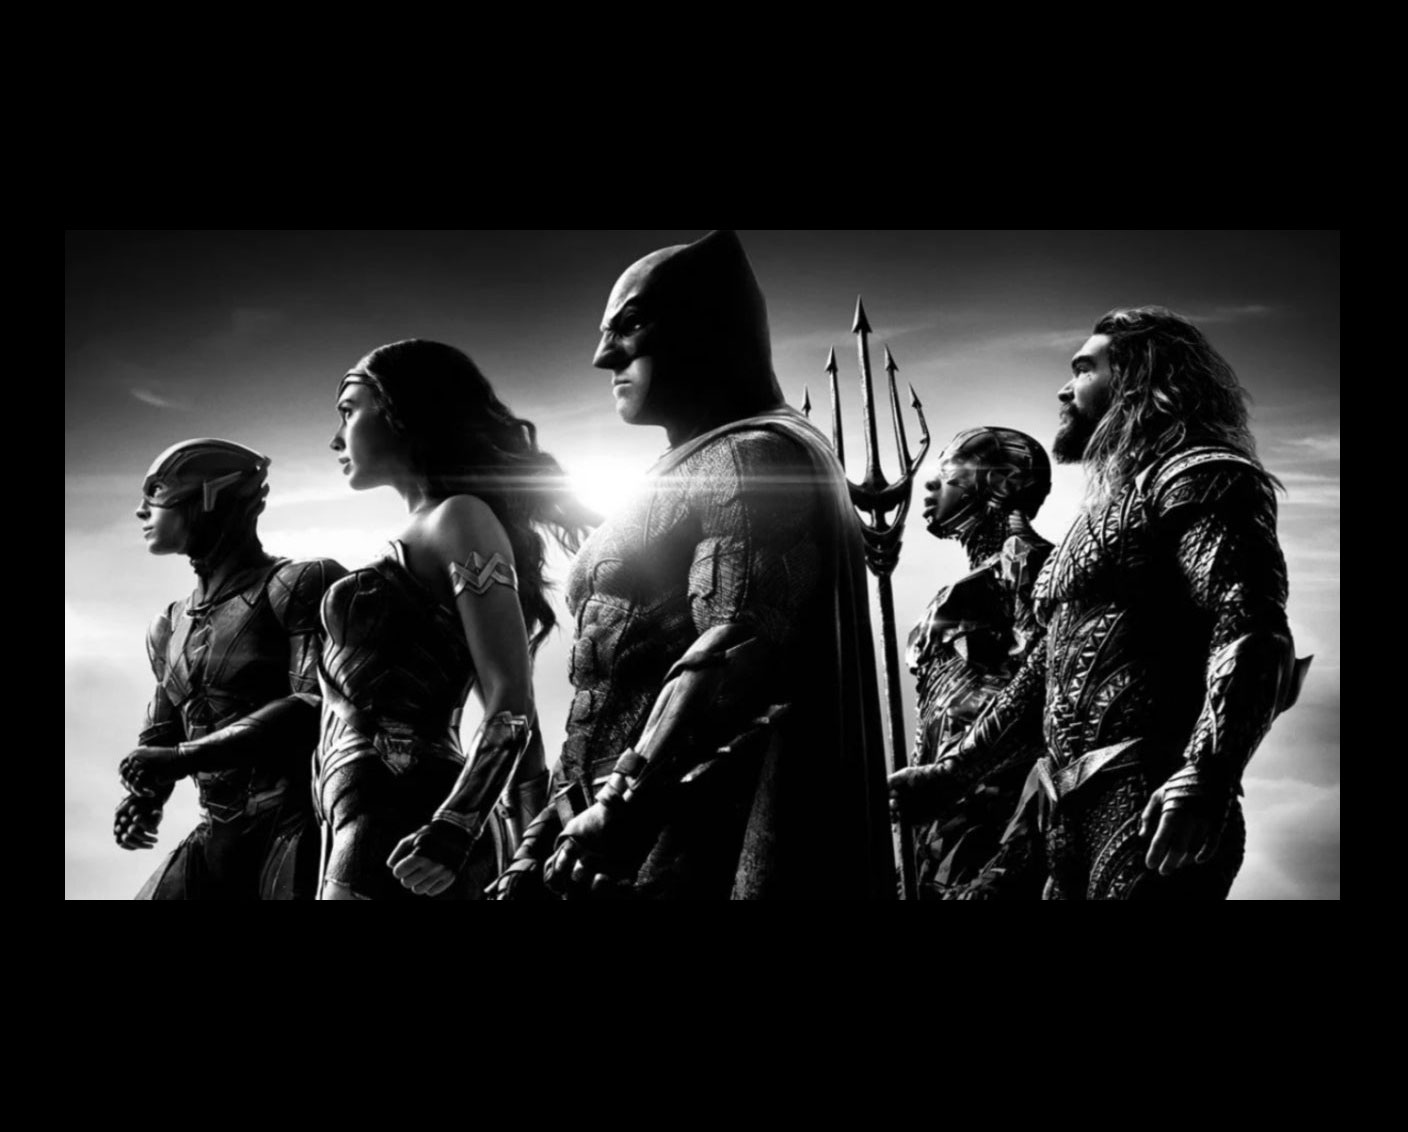 Zack Snyder's Justice League full official Trailer is here